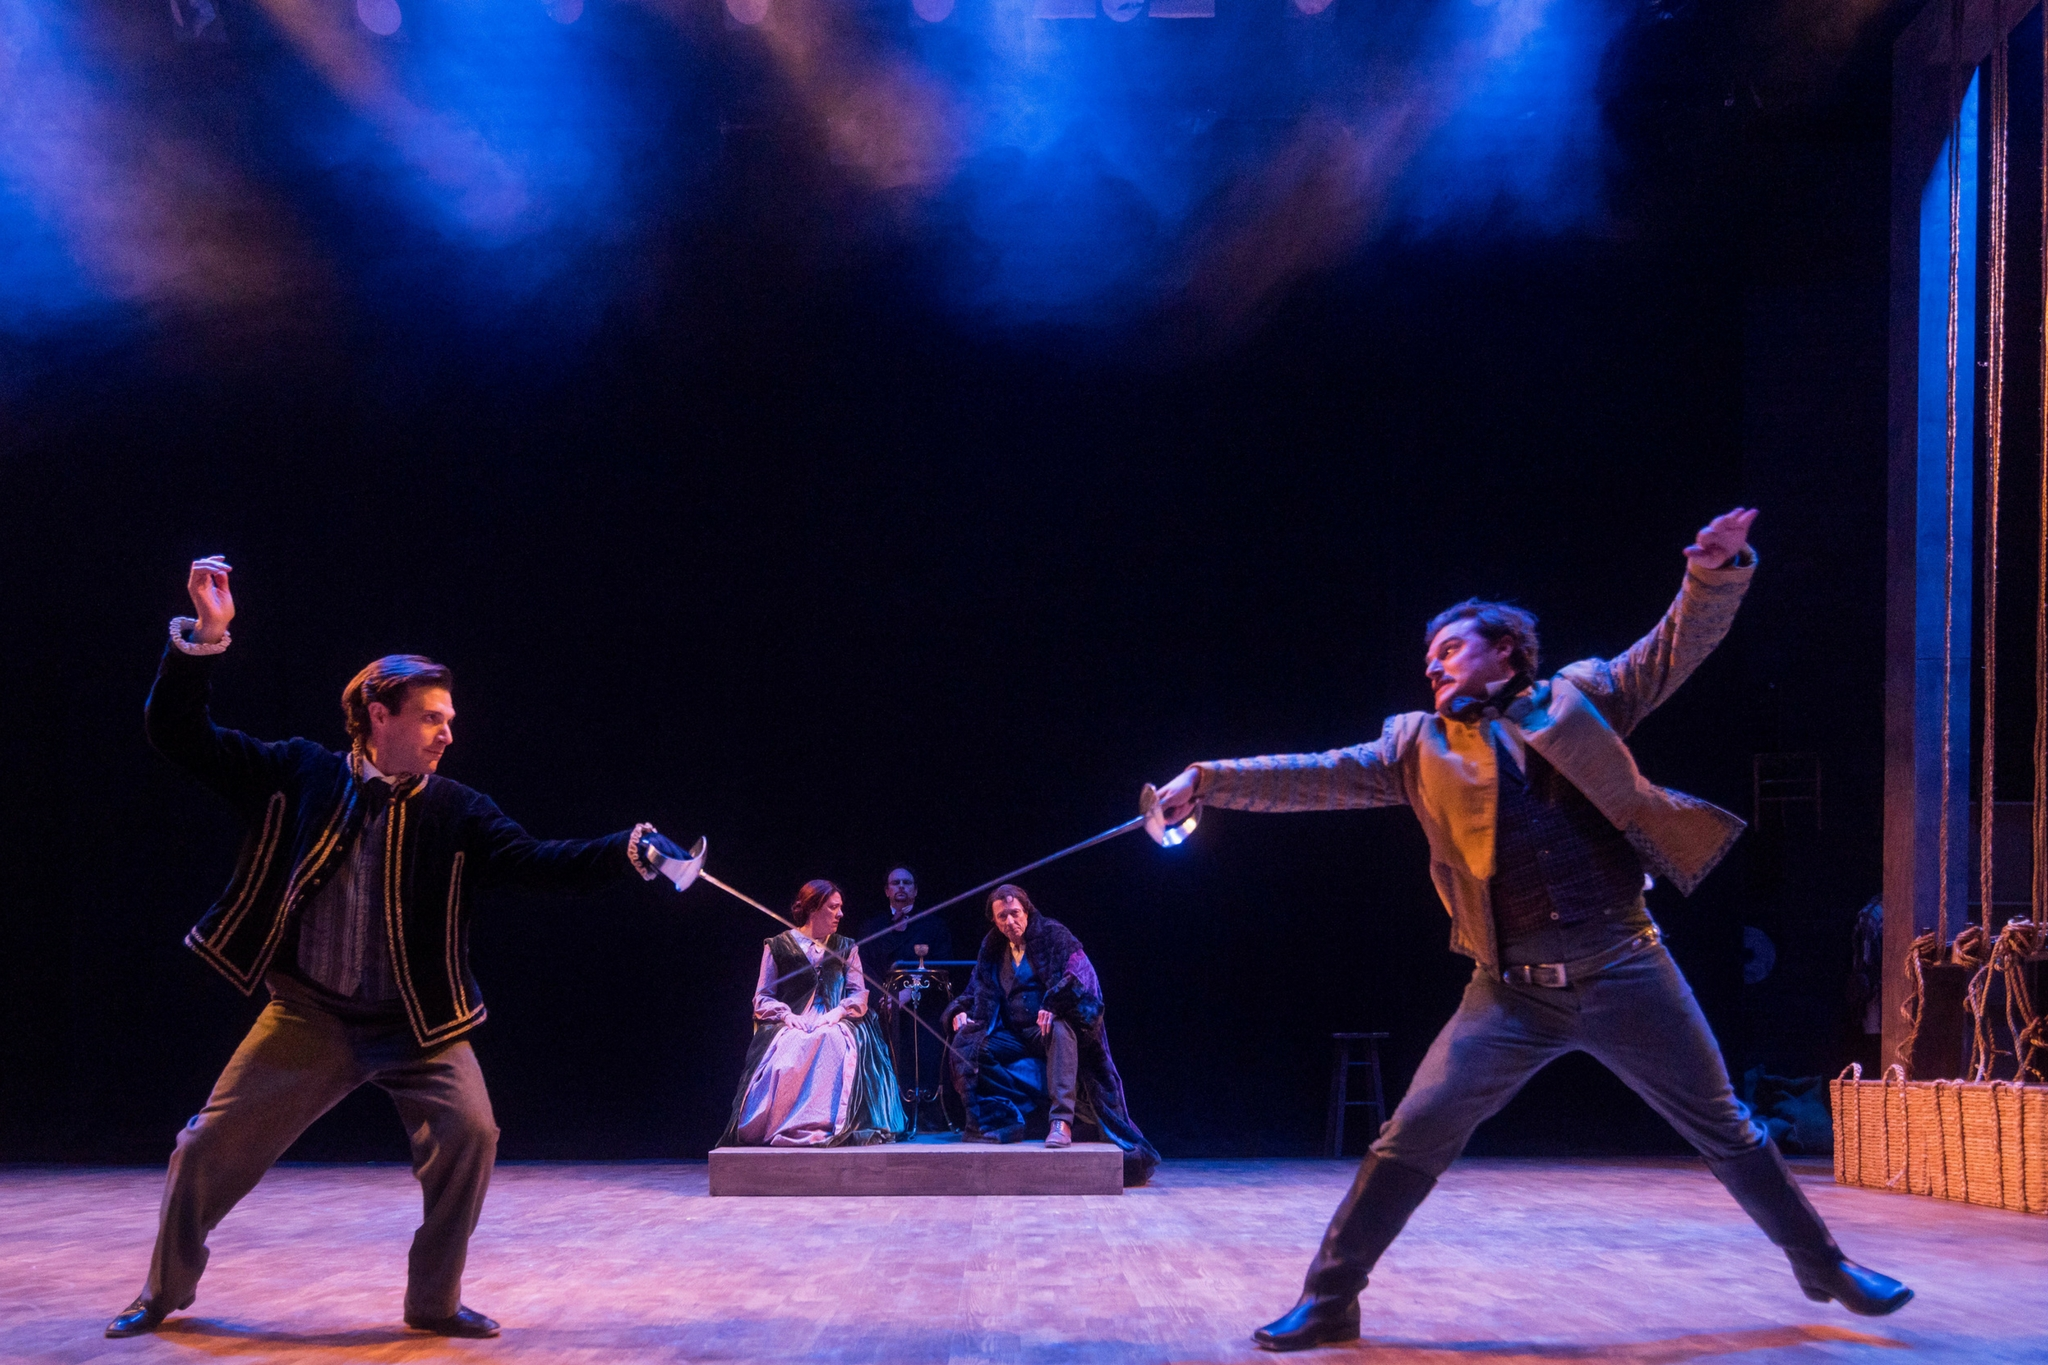 Jacob Fishel (Edwin Booth), Maureen Keiller (Mary Ann Holmes), Jake Broder (Adam Badeau), Will Lyman (Junius Brutus Booth), and Joe Fria (John Wilkes Booth) in Our American Hamlet, 2017-Photo by Nile Hawver